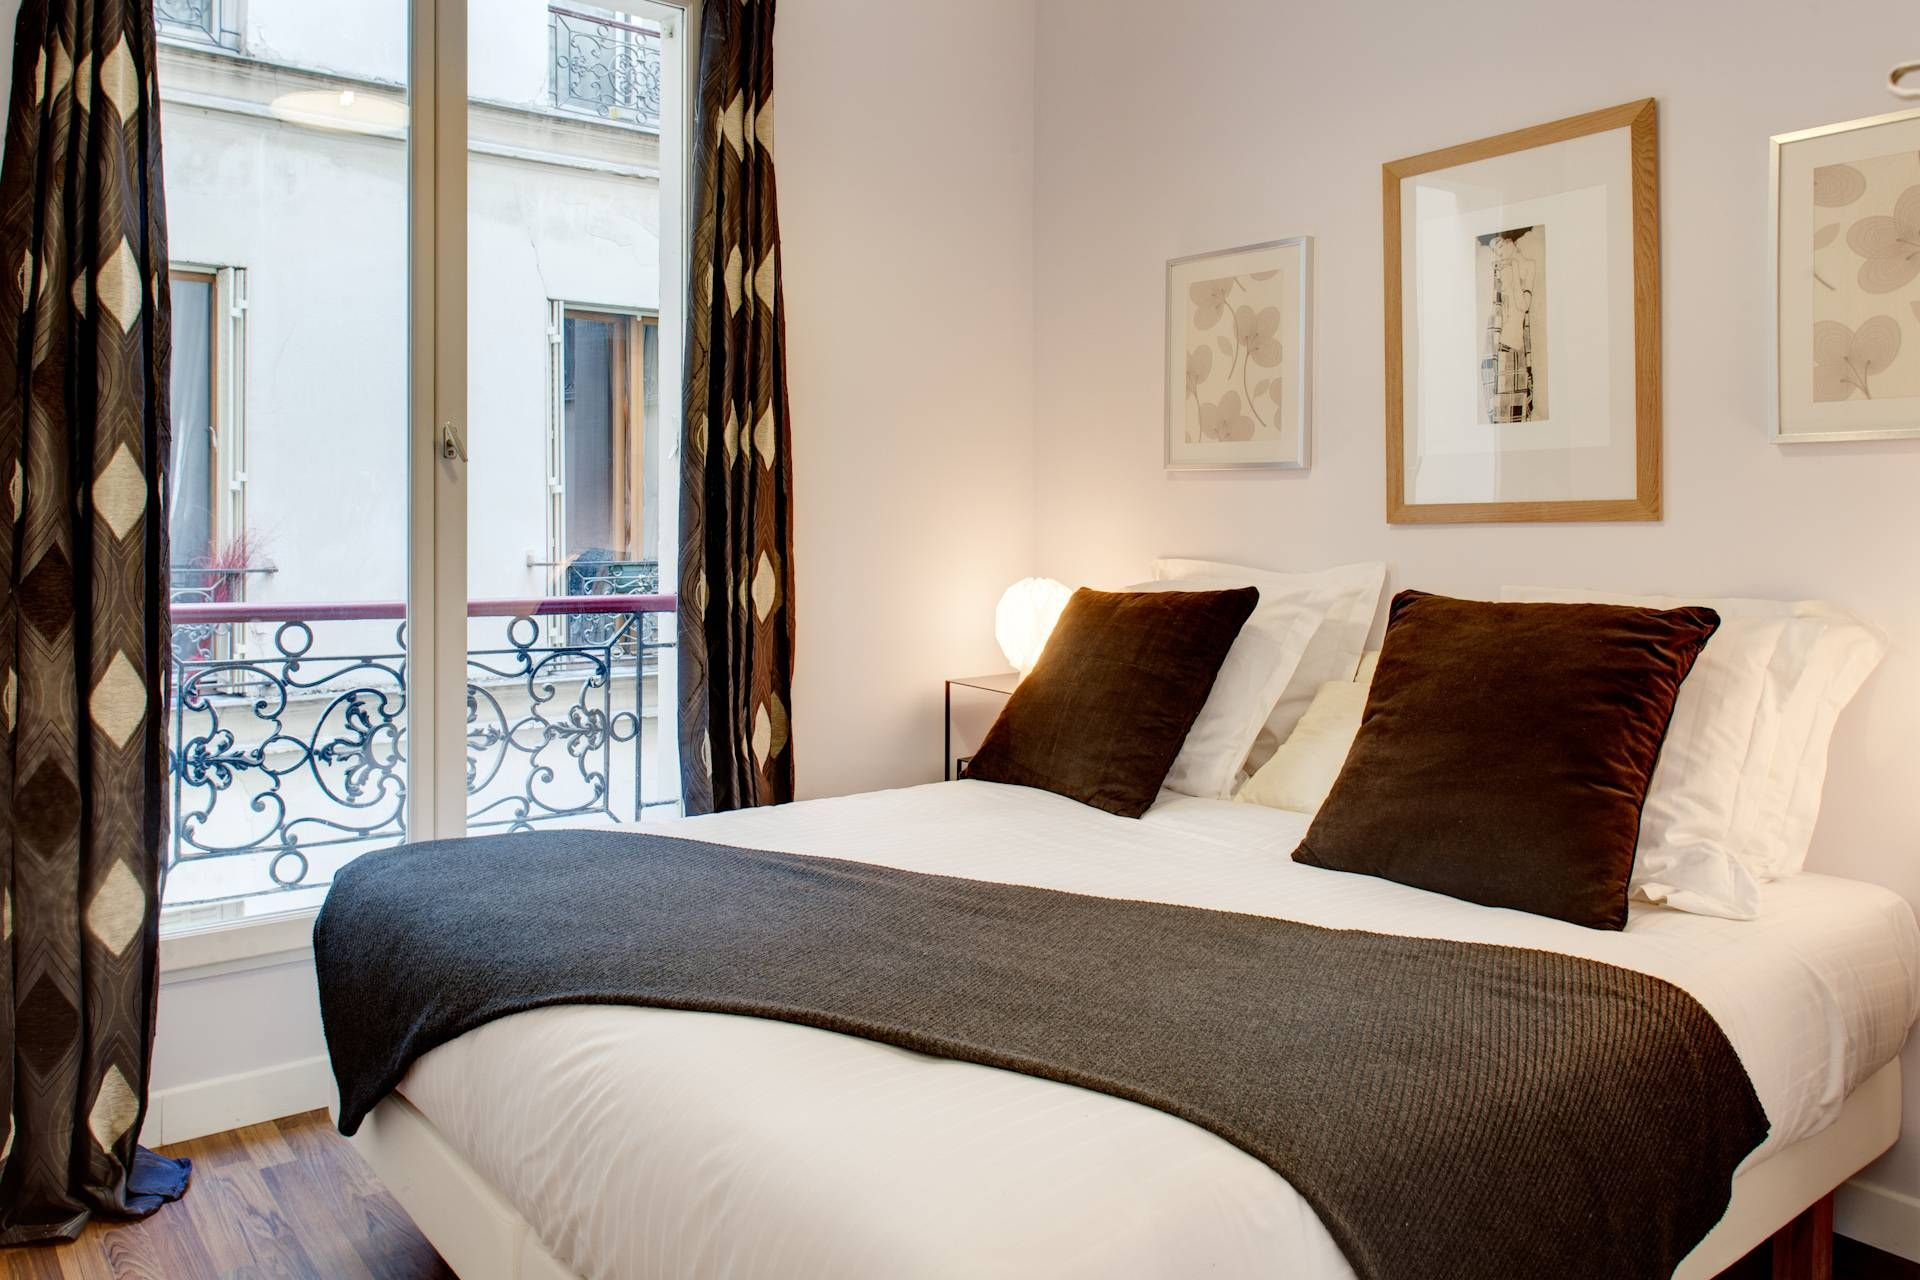 The most important during your trip is to feel like you were home - HometownExperience     #rental #paris #apartment